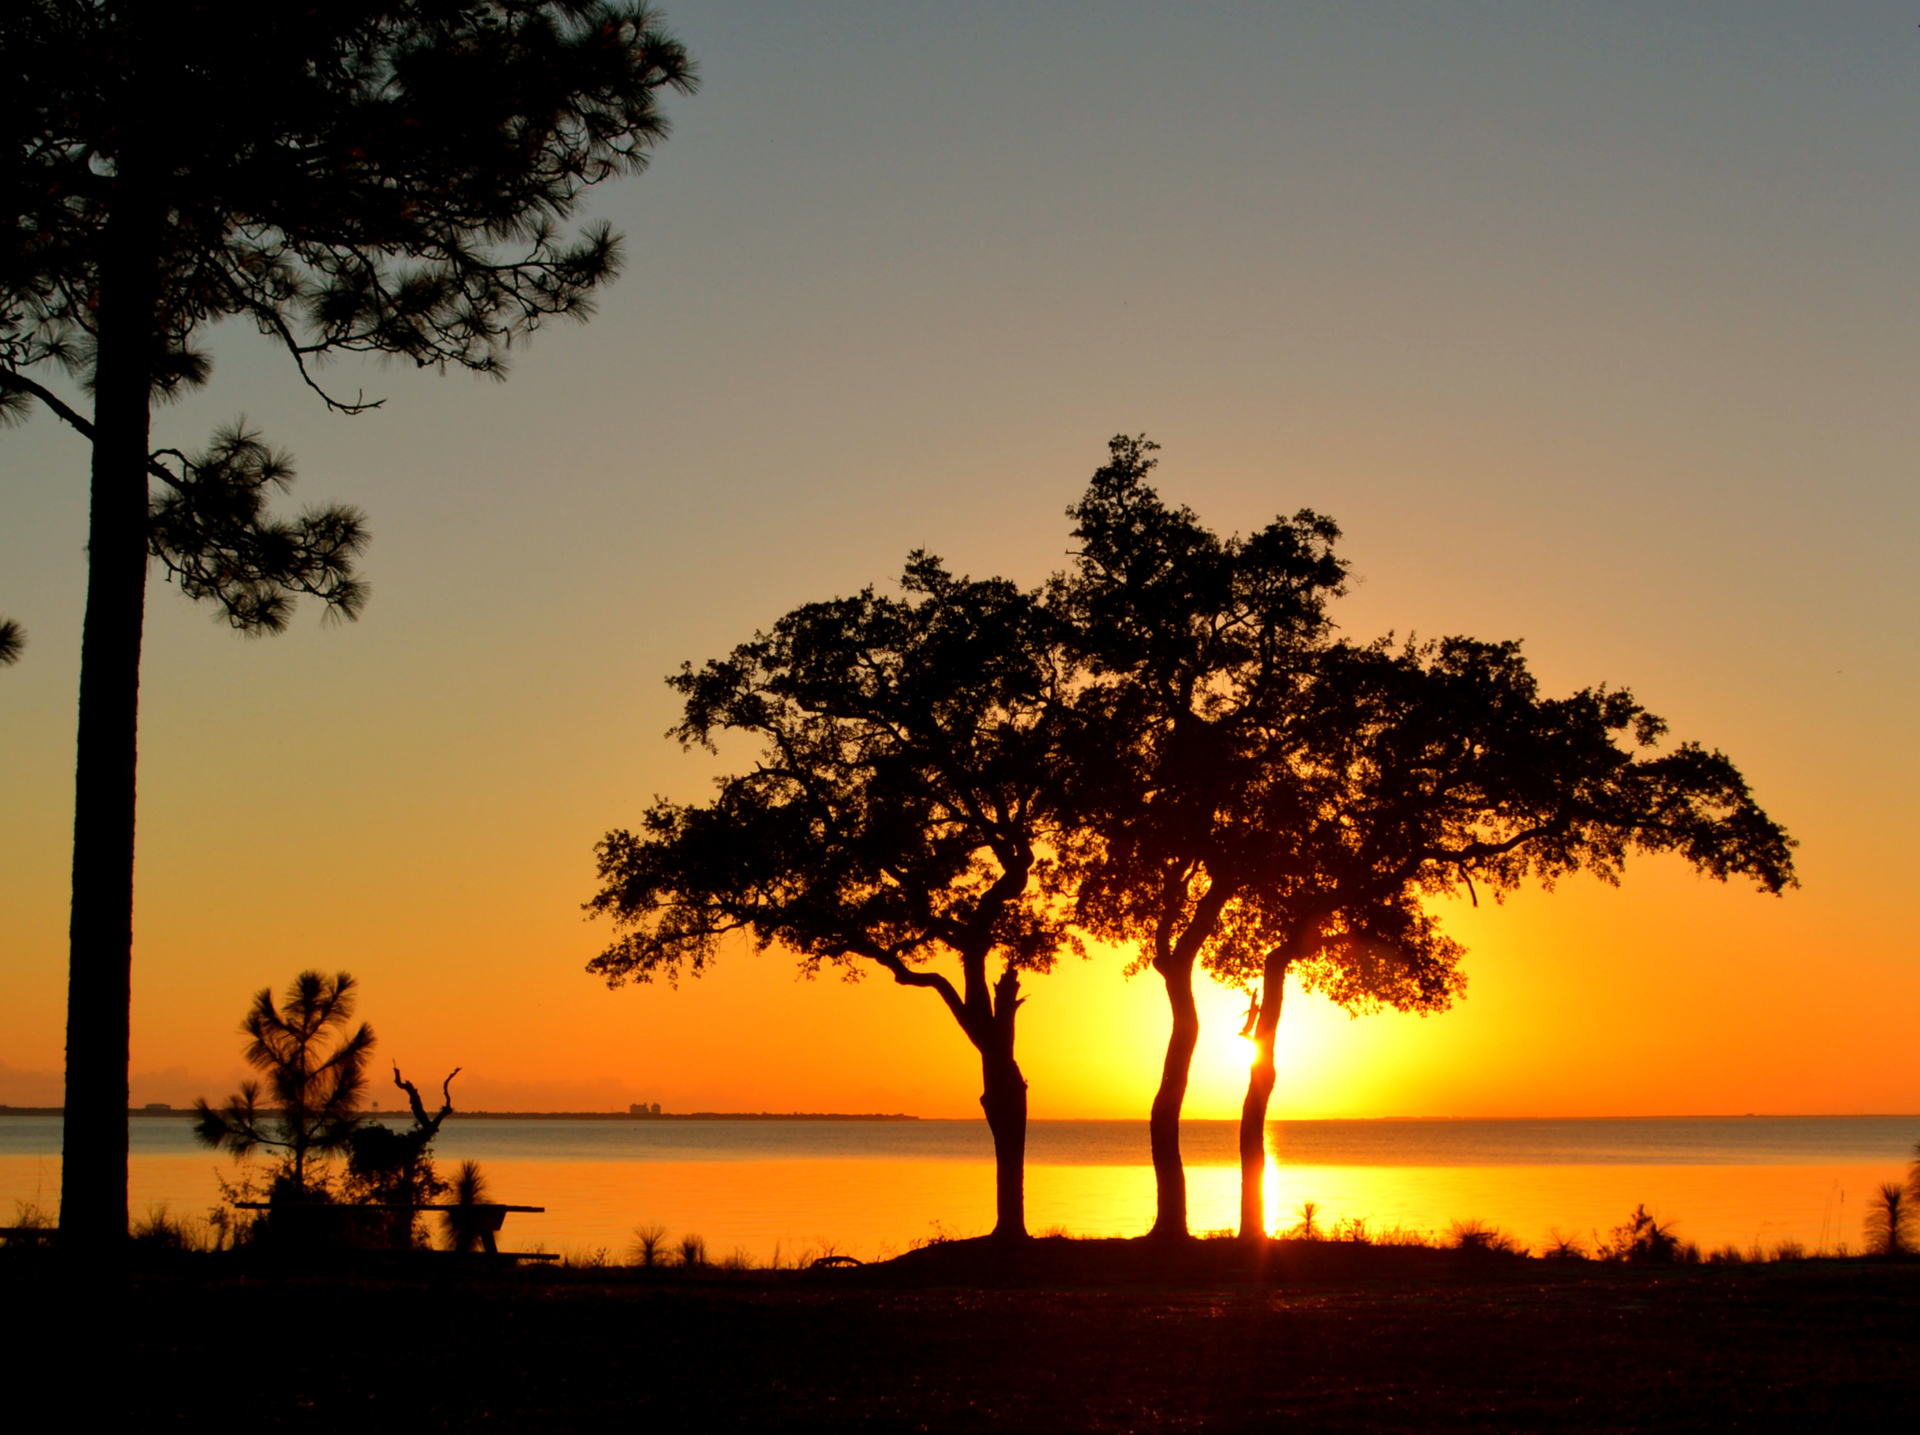 Silhouette of tree on lakeshore